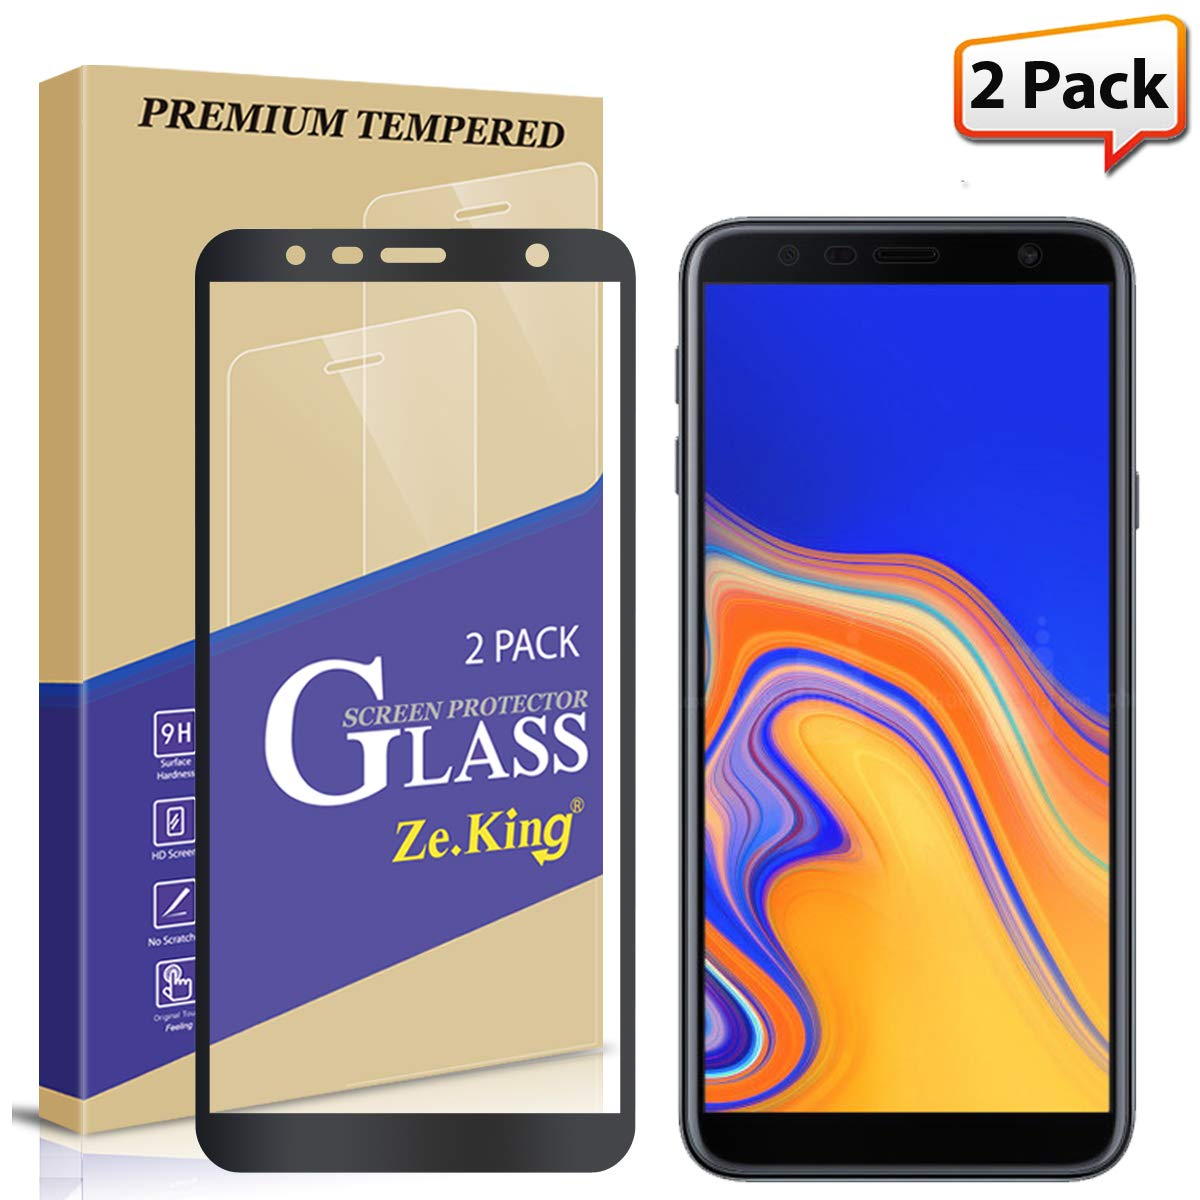 [2-Pack] Samsung Galaxy J4 Plus Full Coverage Screen Protector Tempered Glass, Zeking 0.33mm 2.5D Edge 9H Hardness [Anti Scratch][Anti-Fingerprint] Bubble Free, Lifetime Replacement Warranty (Black)